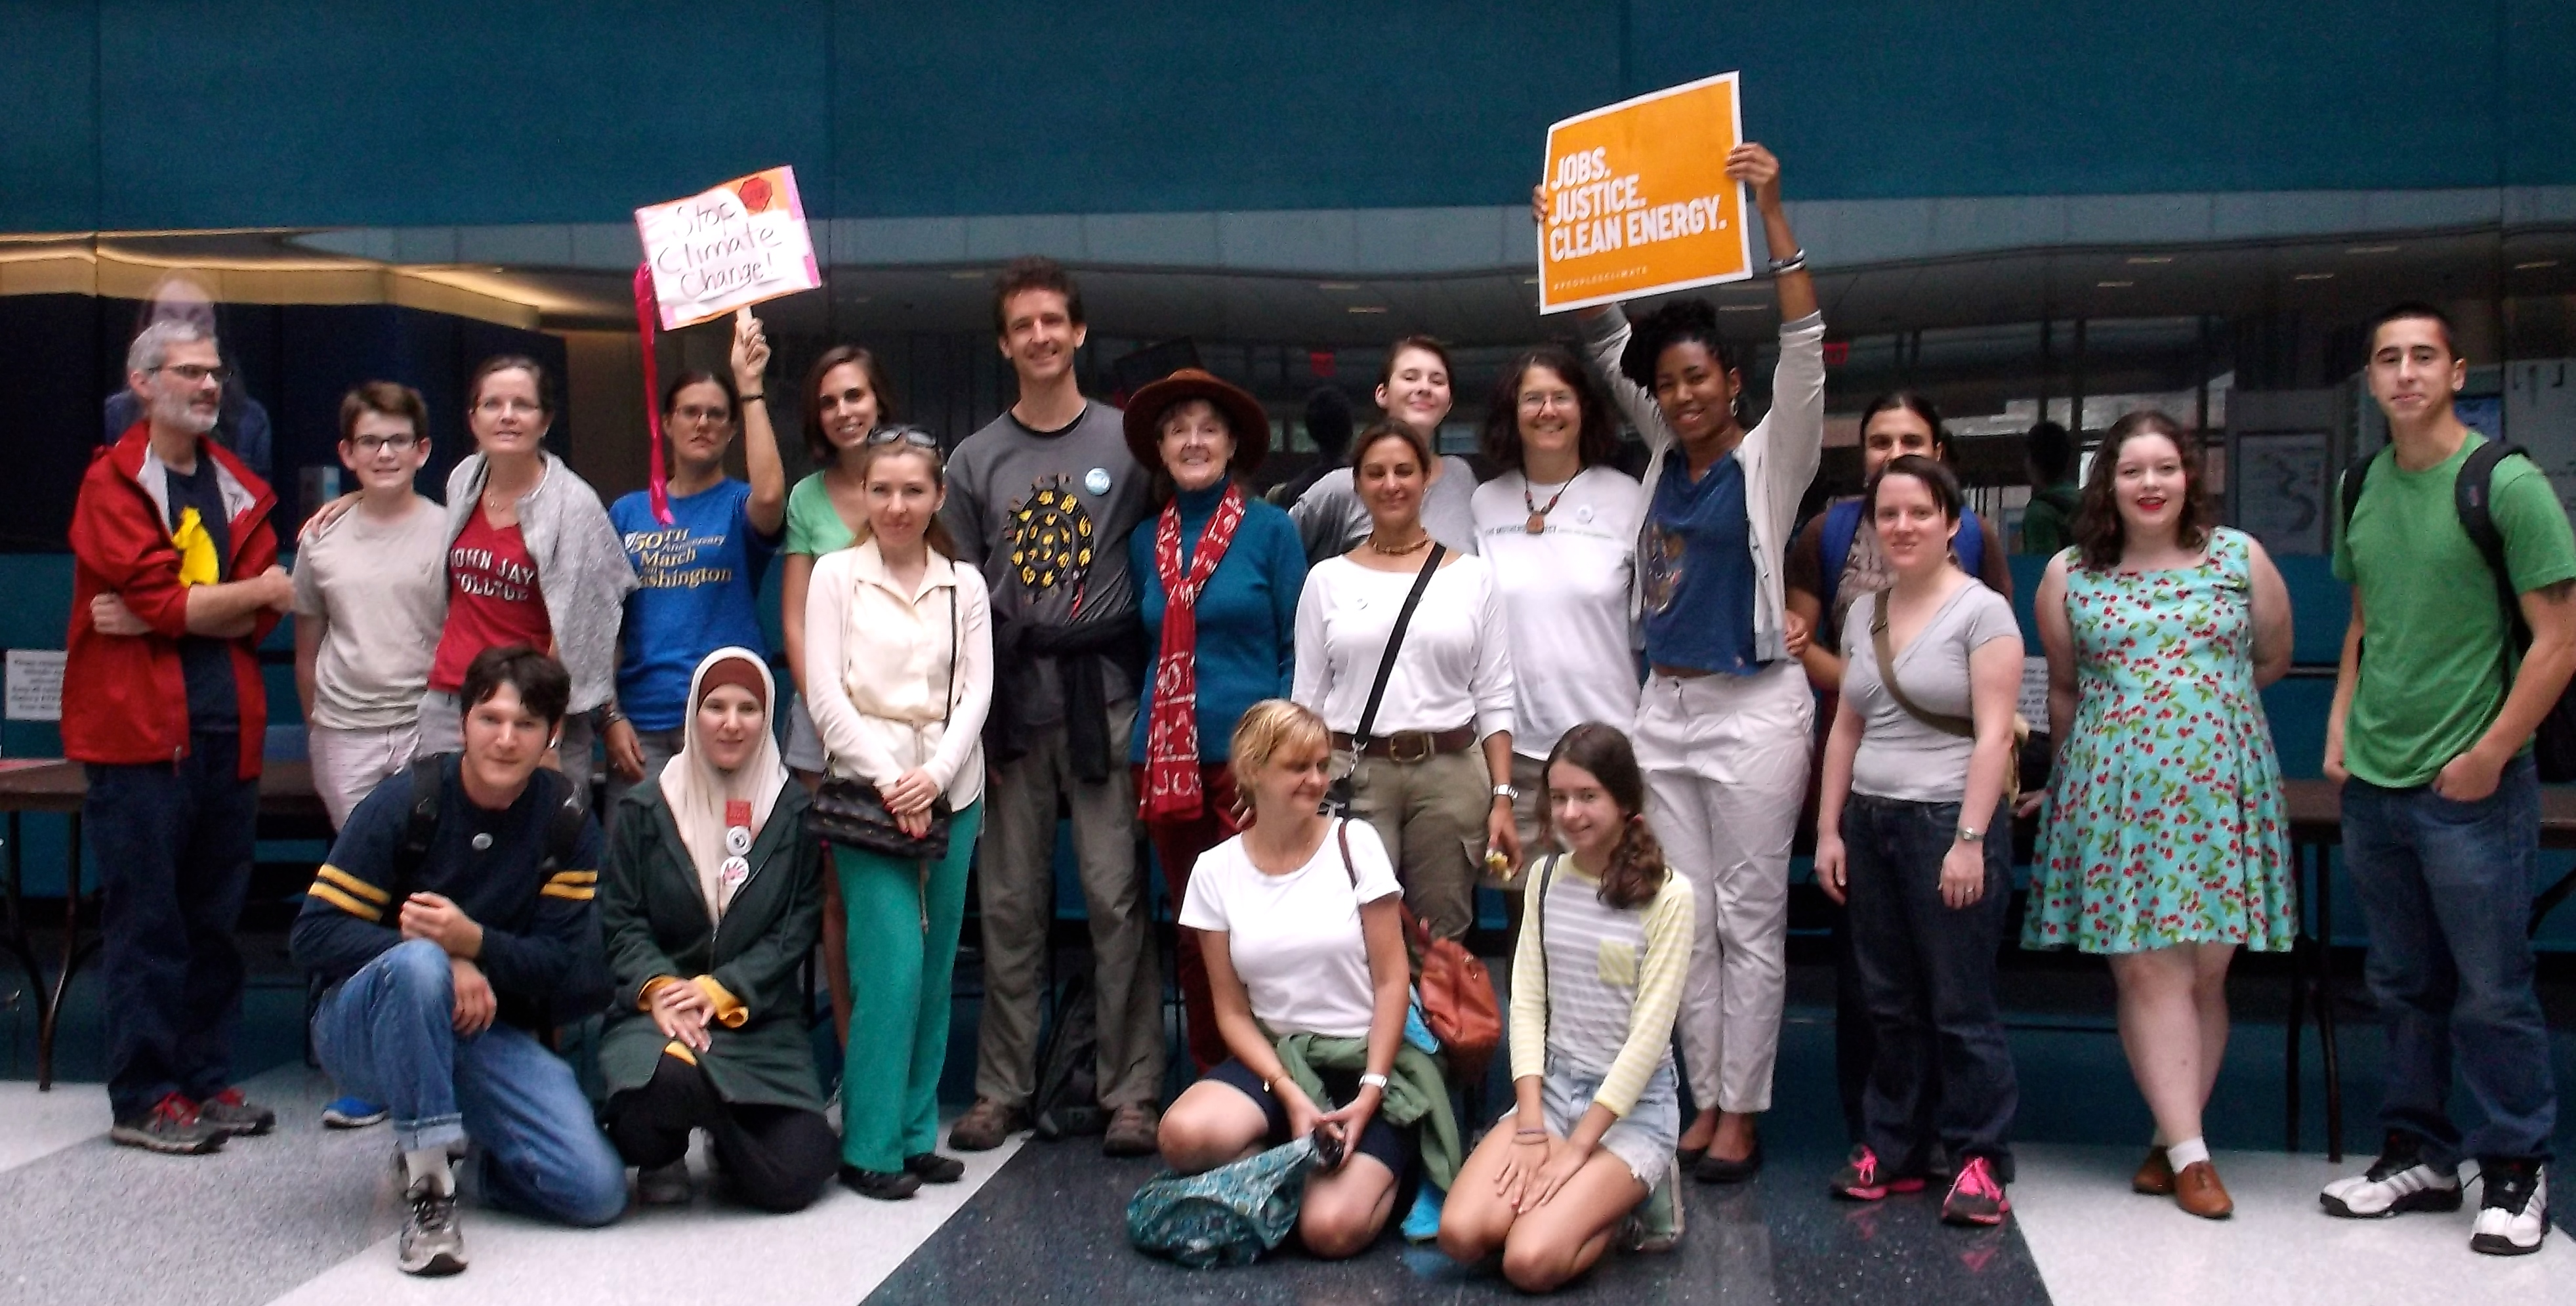 John Jay students, staff, and faculty help make history at the People's Climate March